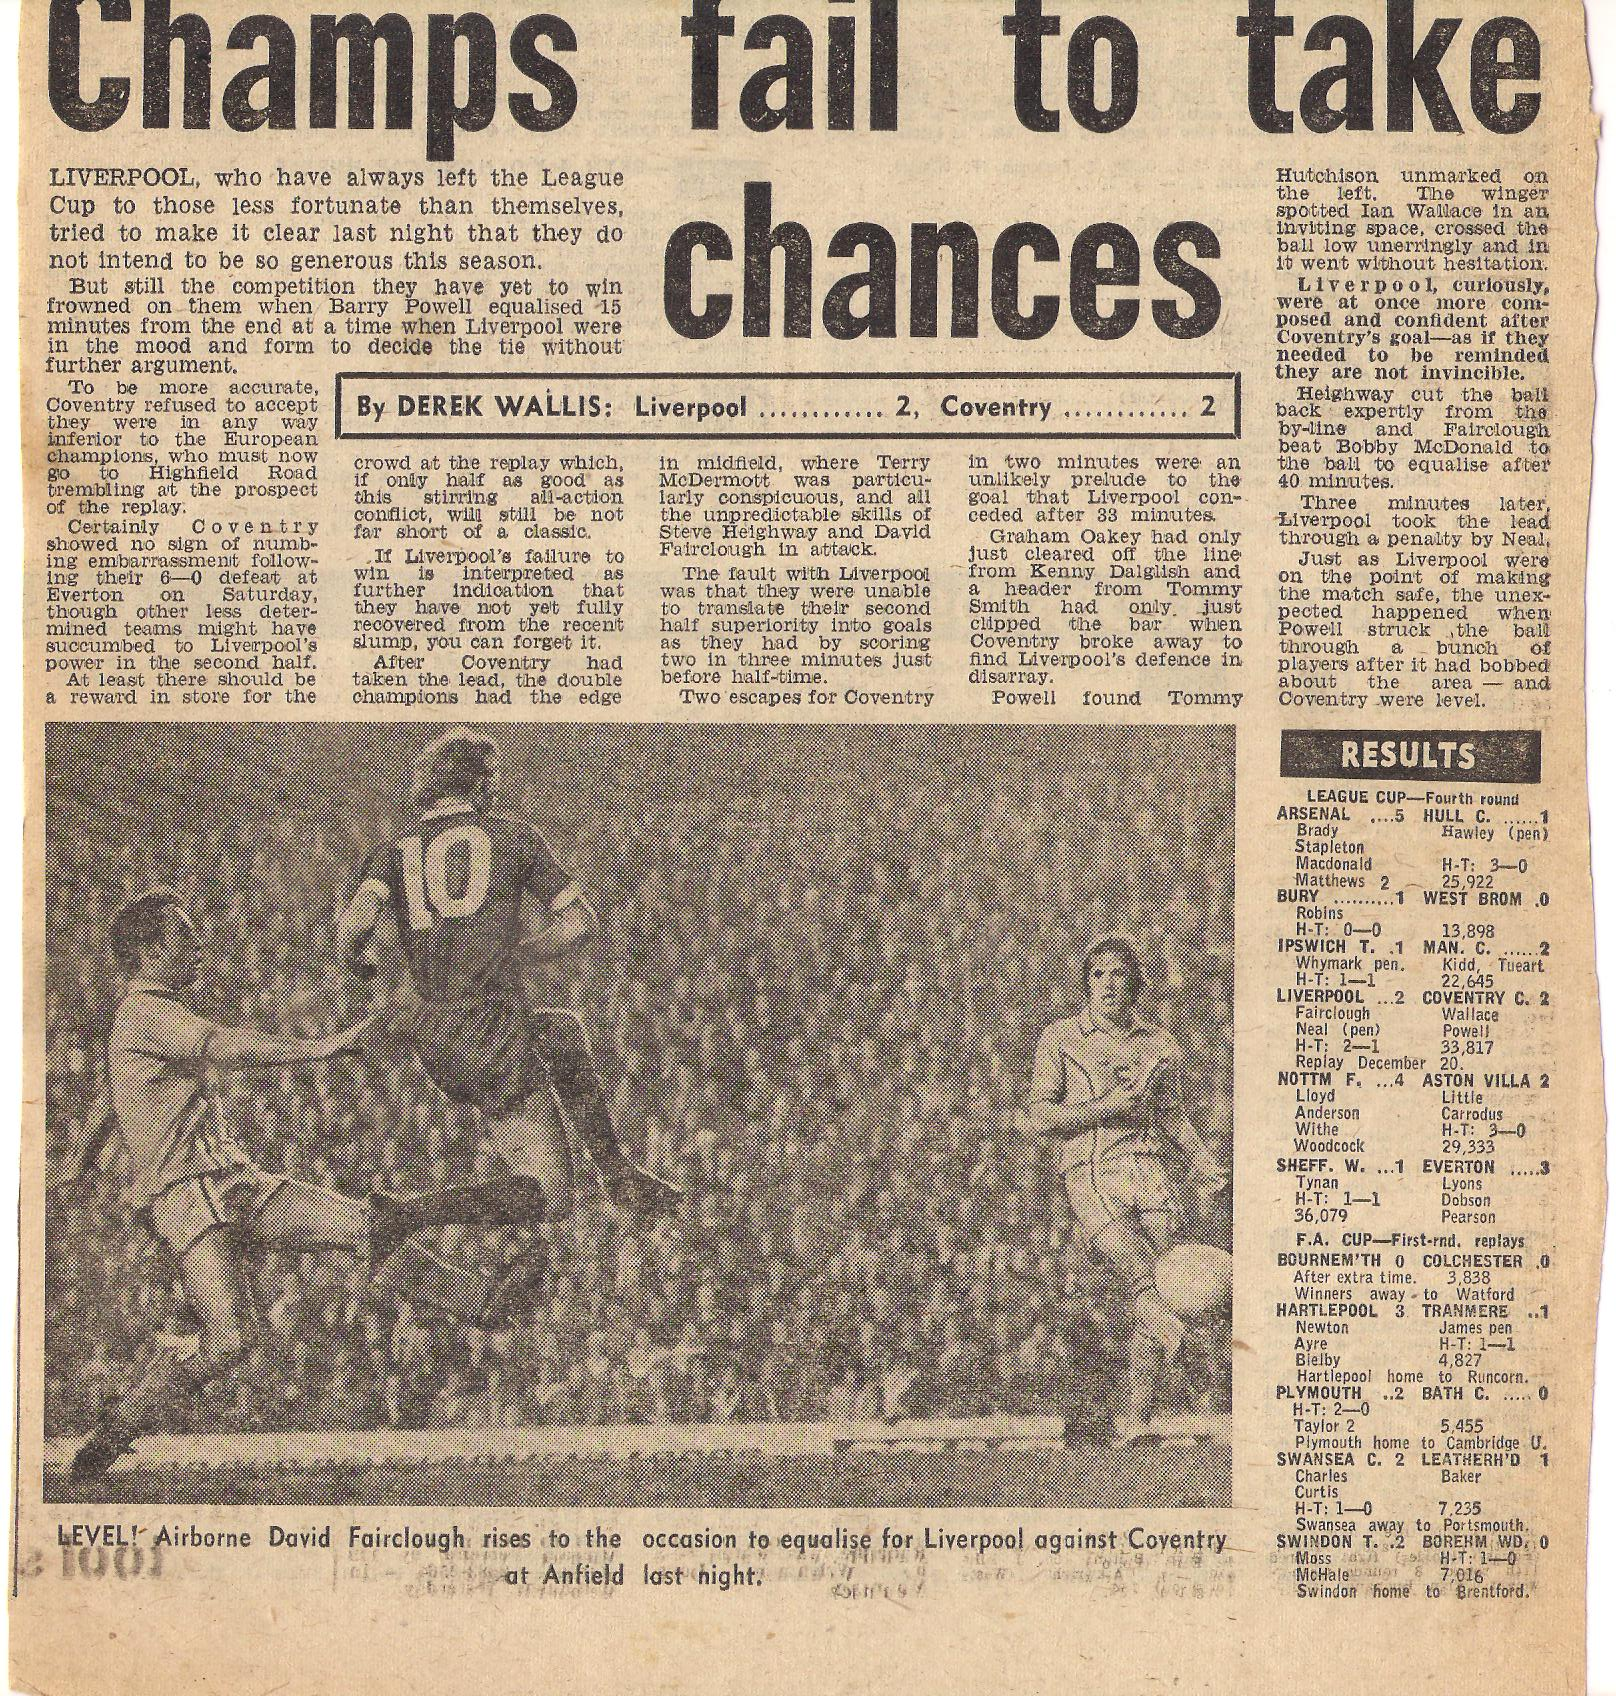 Fairclough rises to the occasion - 29 November 1977